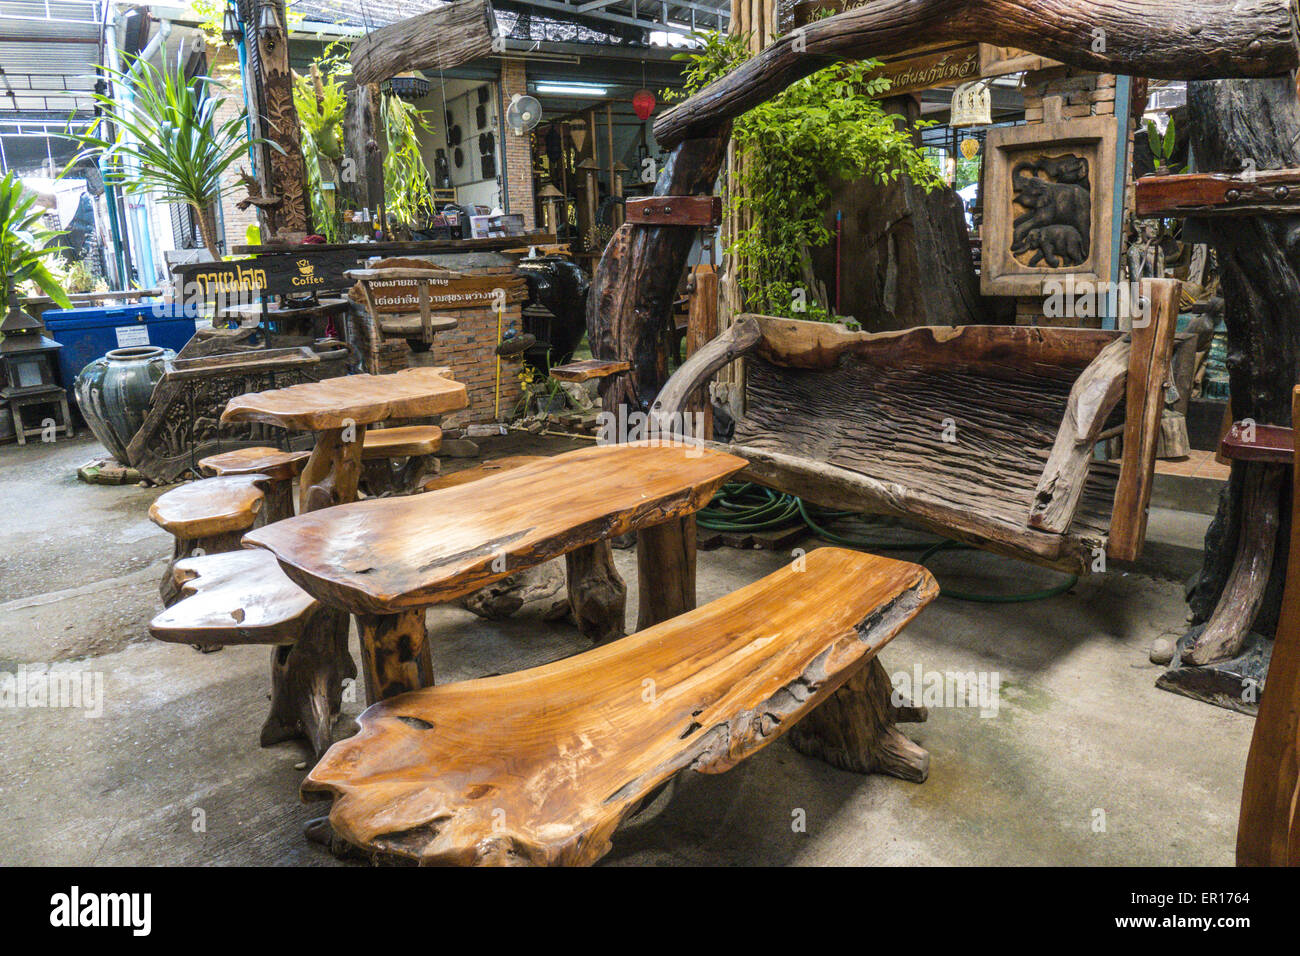 Rustic wooden furniture thailand stock photo royalty for Thai furniture